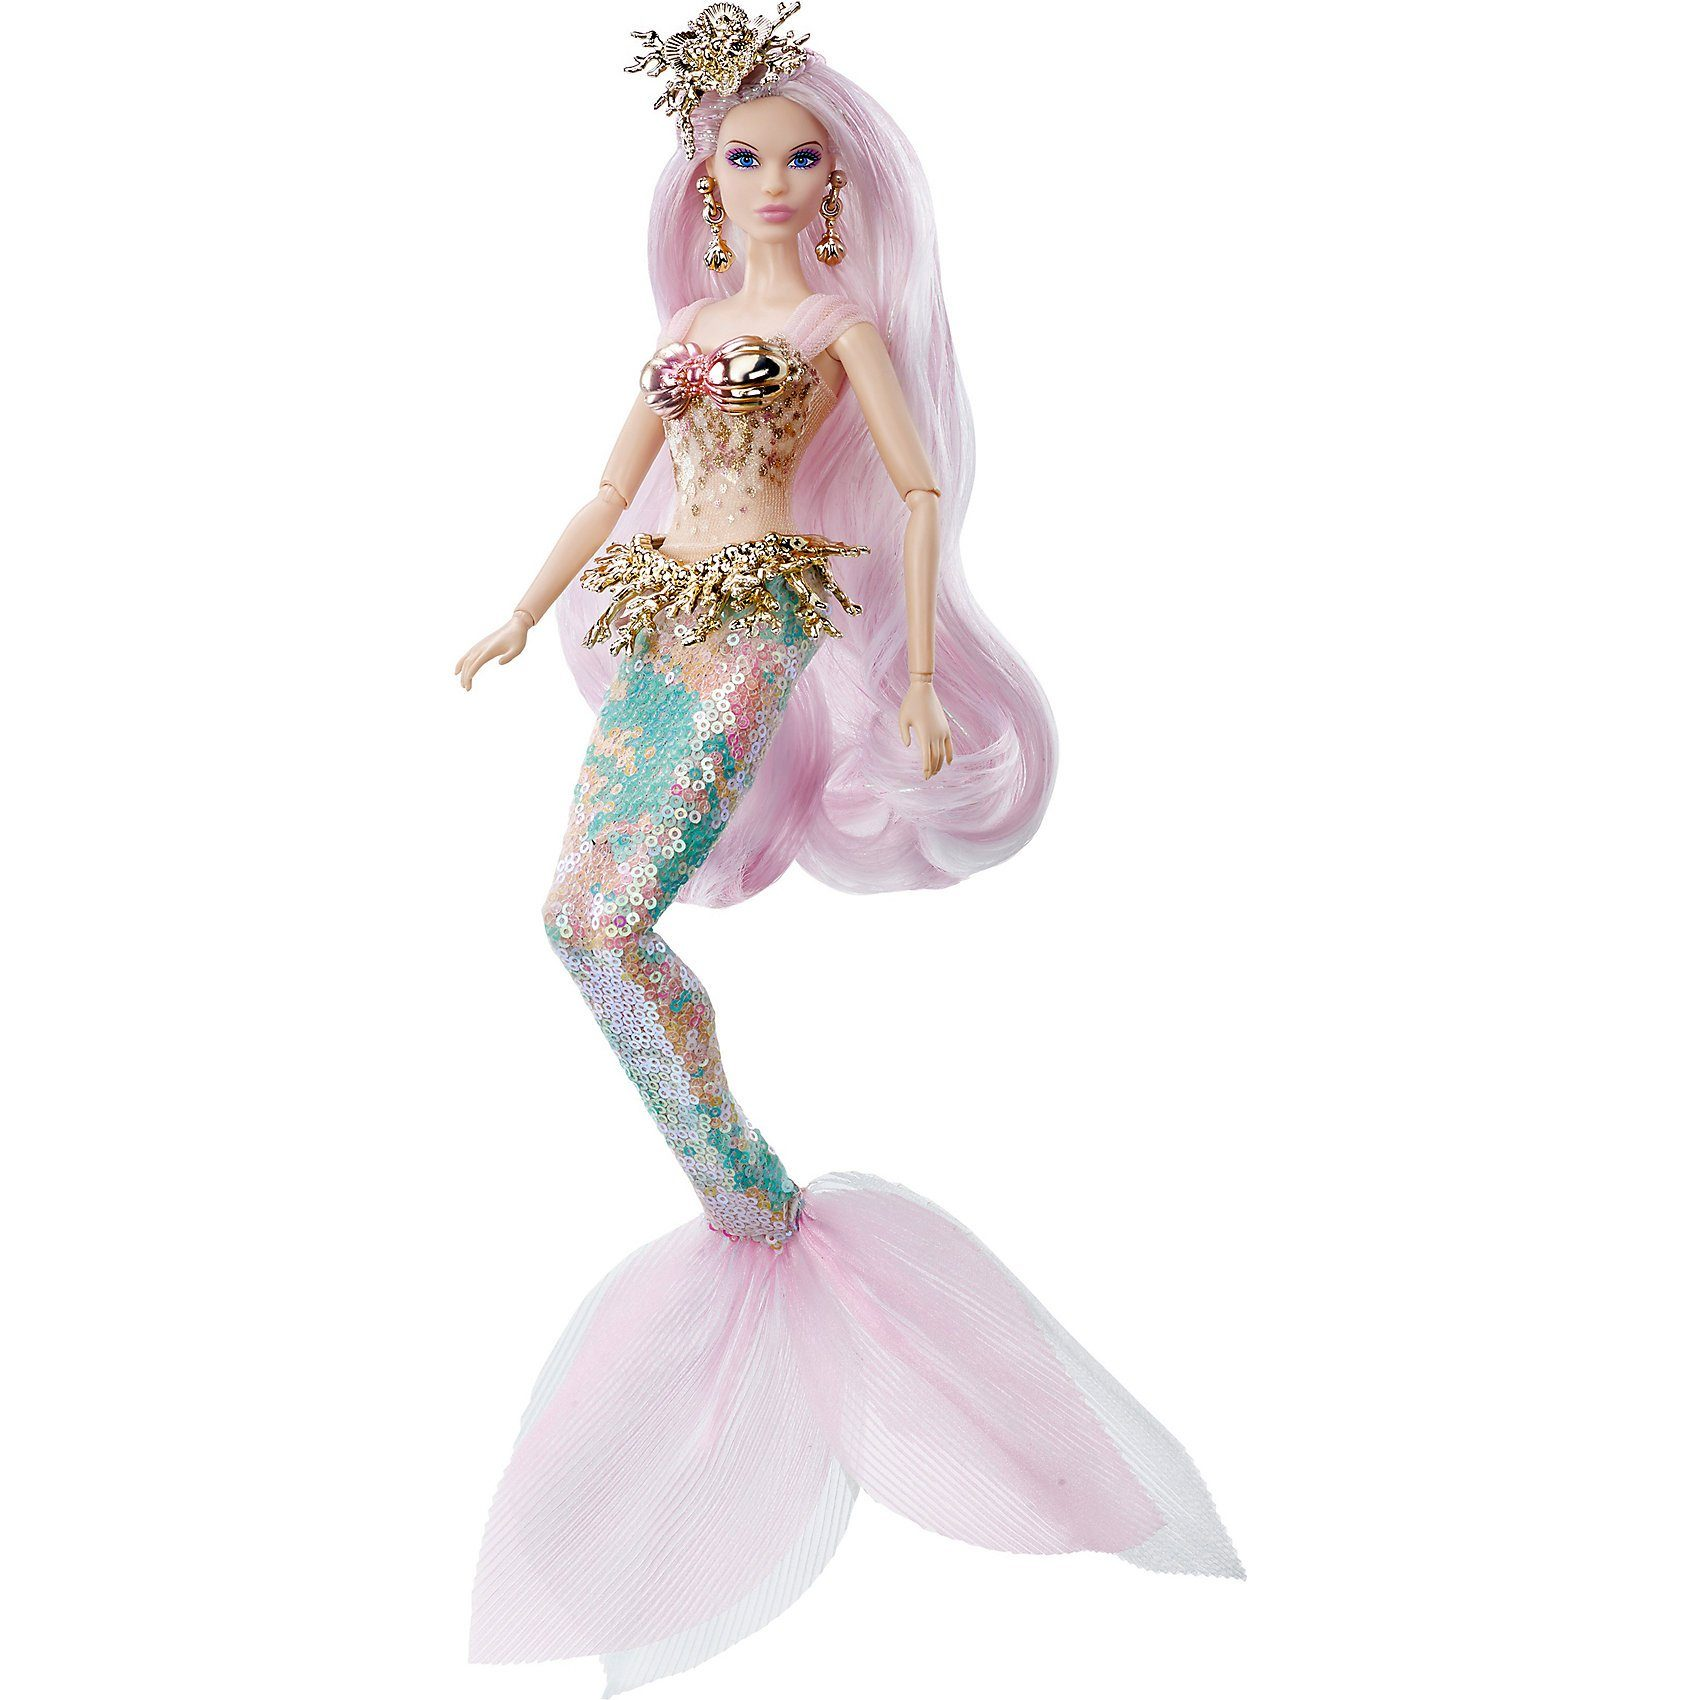 Pinke Küche Mattel® Barbie Signature Mermaid Enchantress Puppe | Otto